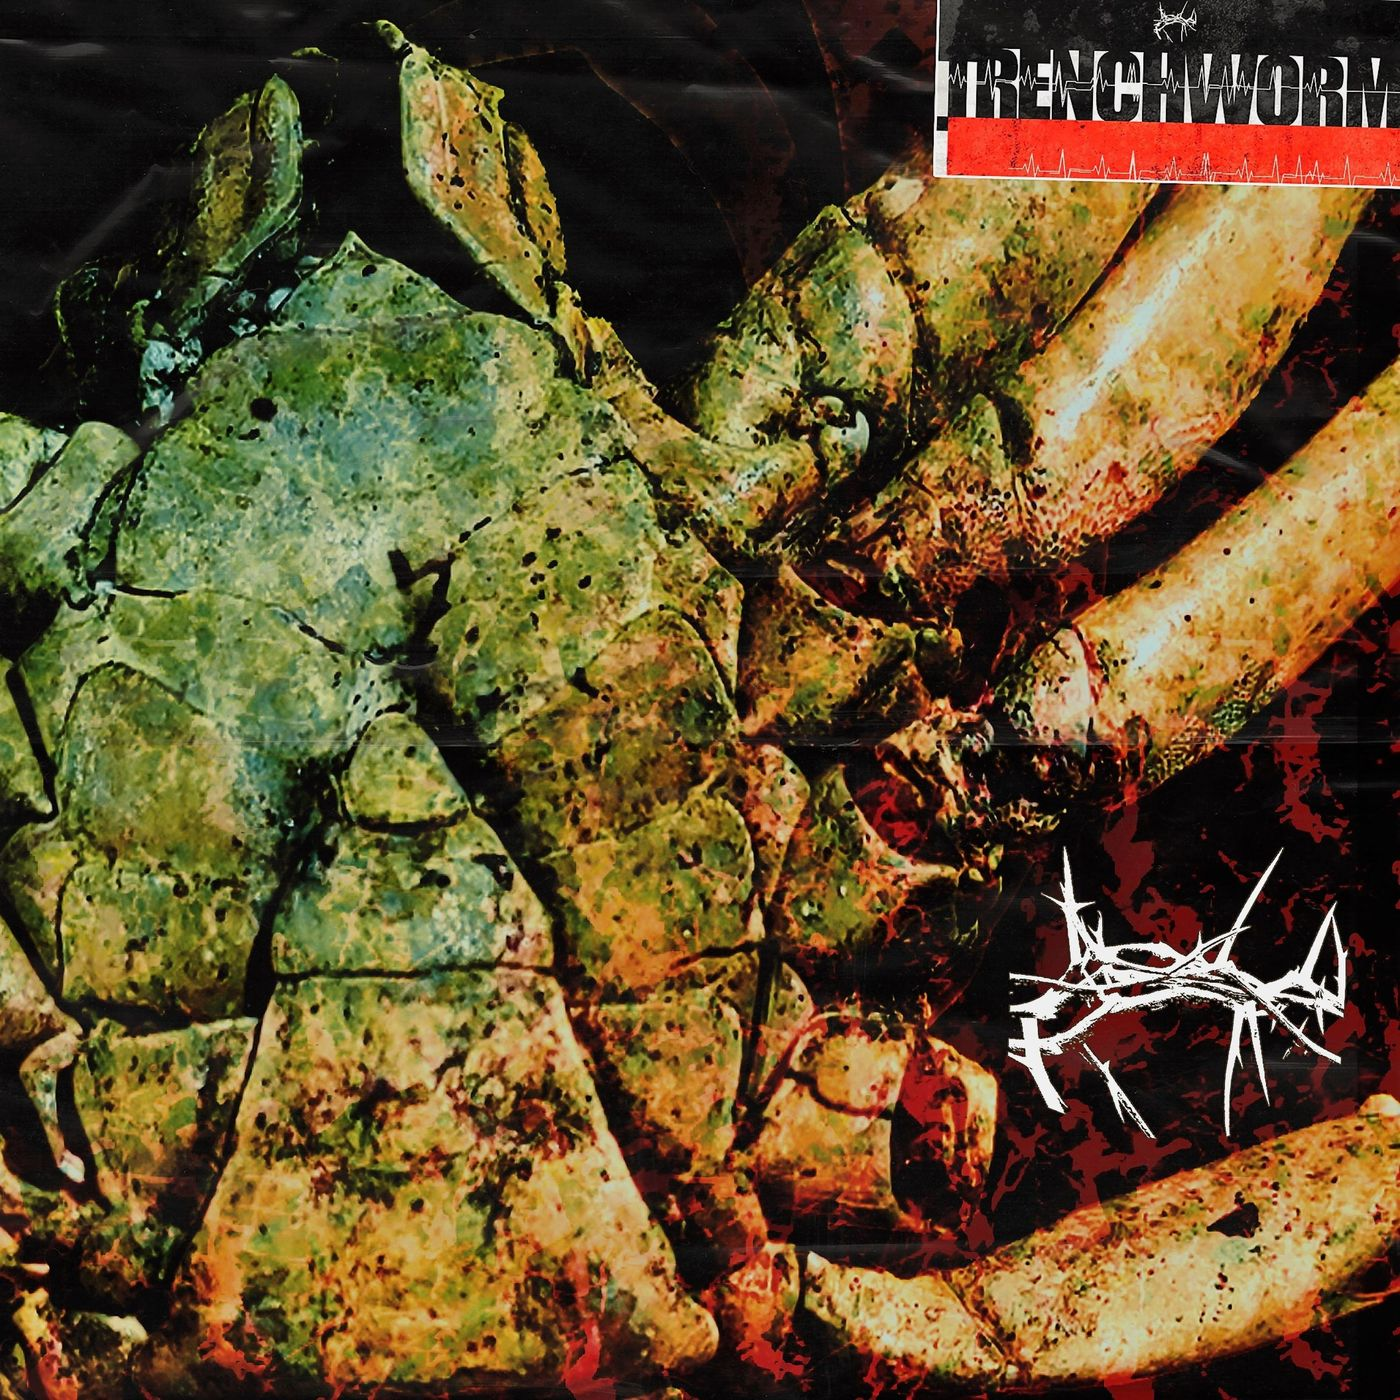 trenchworm - The Map of Flesh [single] (2020)